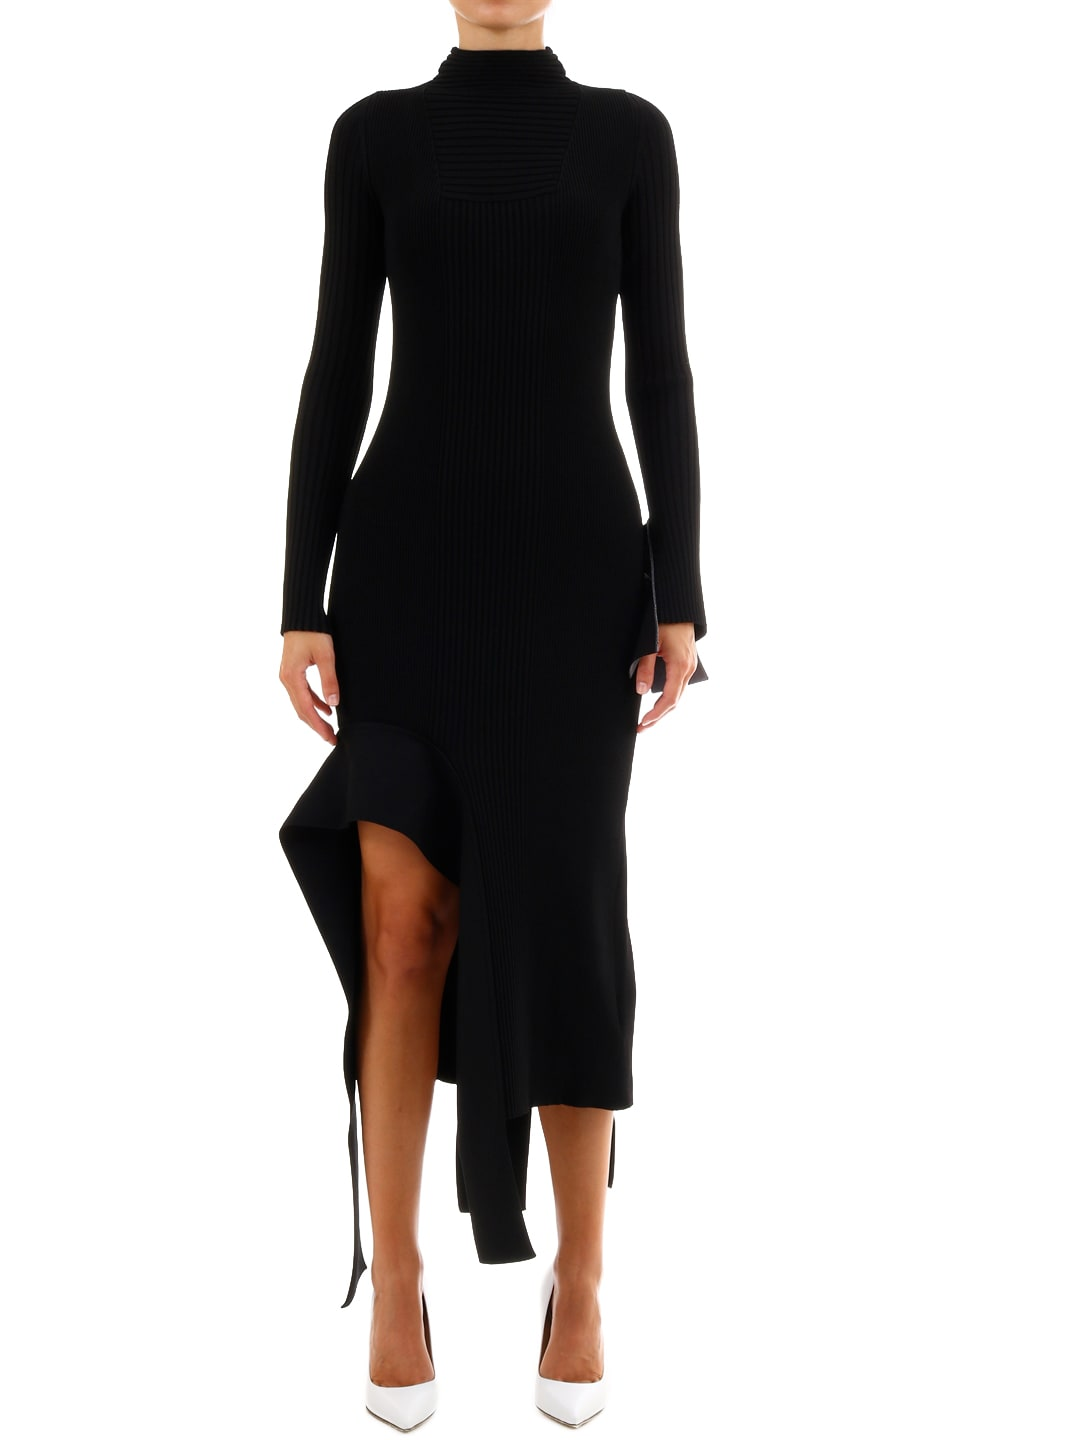 Buy Off-White Black Knit Dress online, shop Off-White with free shipping